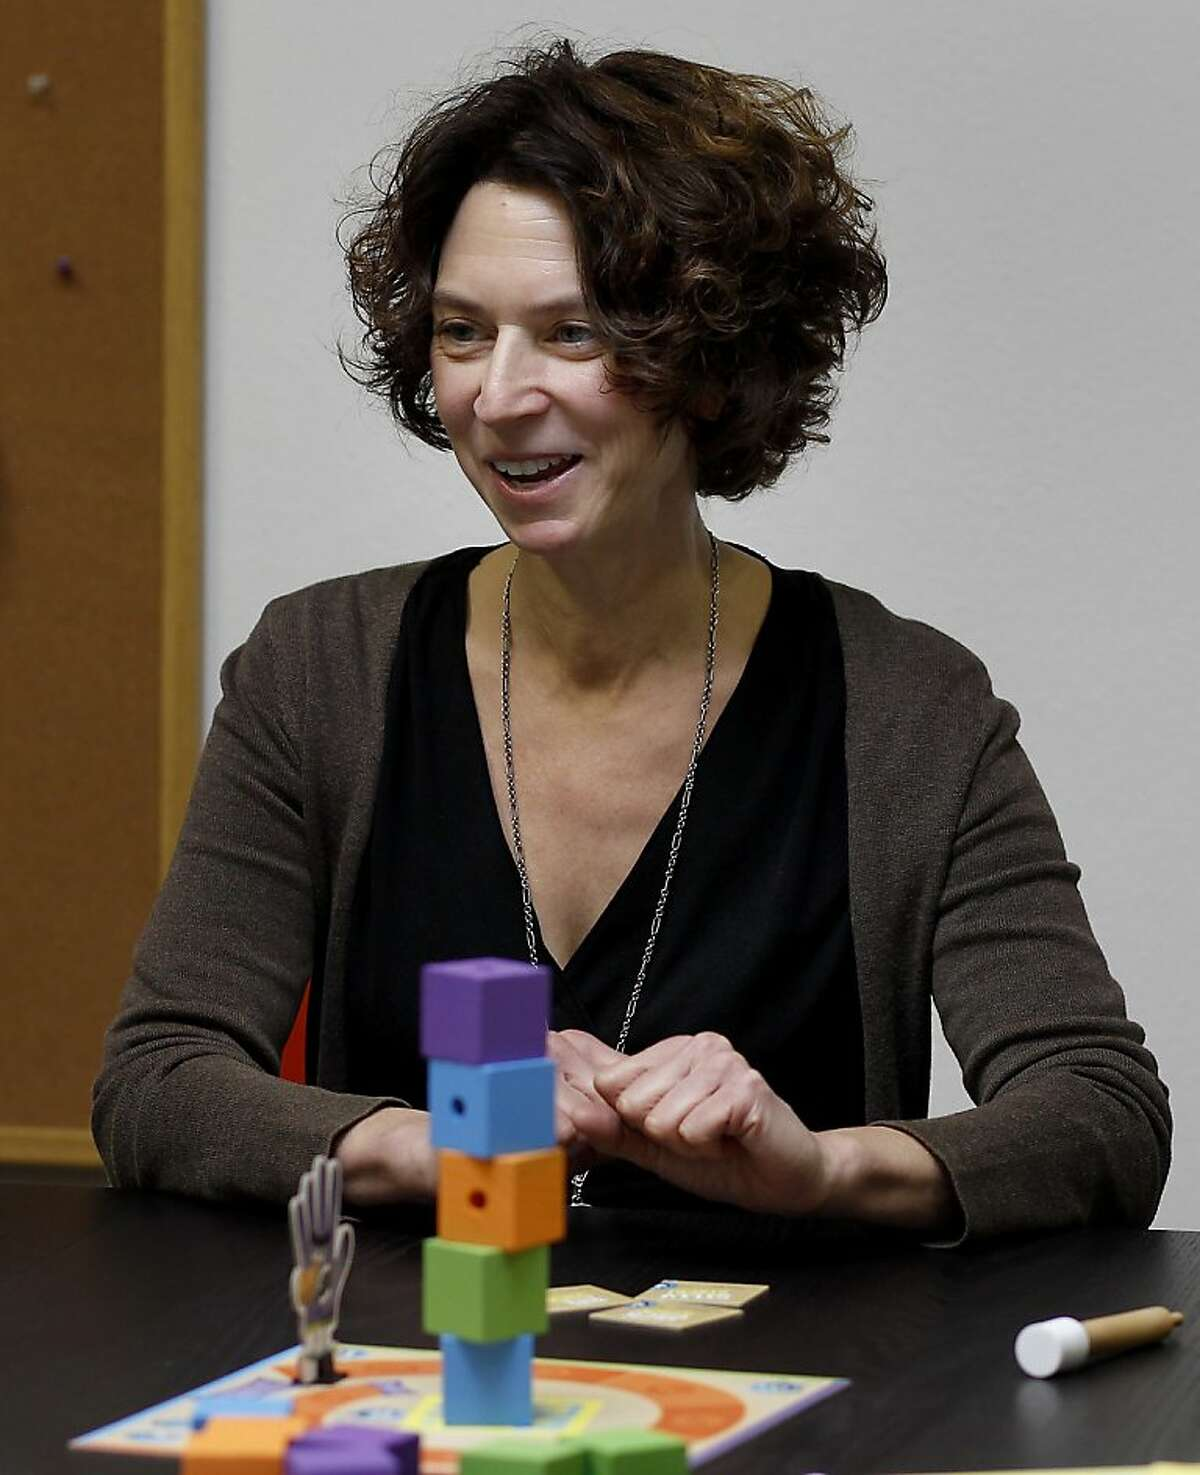 Peaceable Kingdom president Donna Jaffe smiles as she recalls the early days of her business Monday November 18, 2013 in Berkeley, Calif. Peaceable Kingdom designs board games, cards and stickers for children from their offices in Berkeley, Calif.